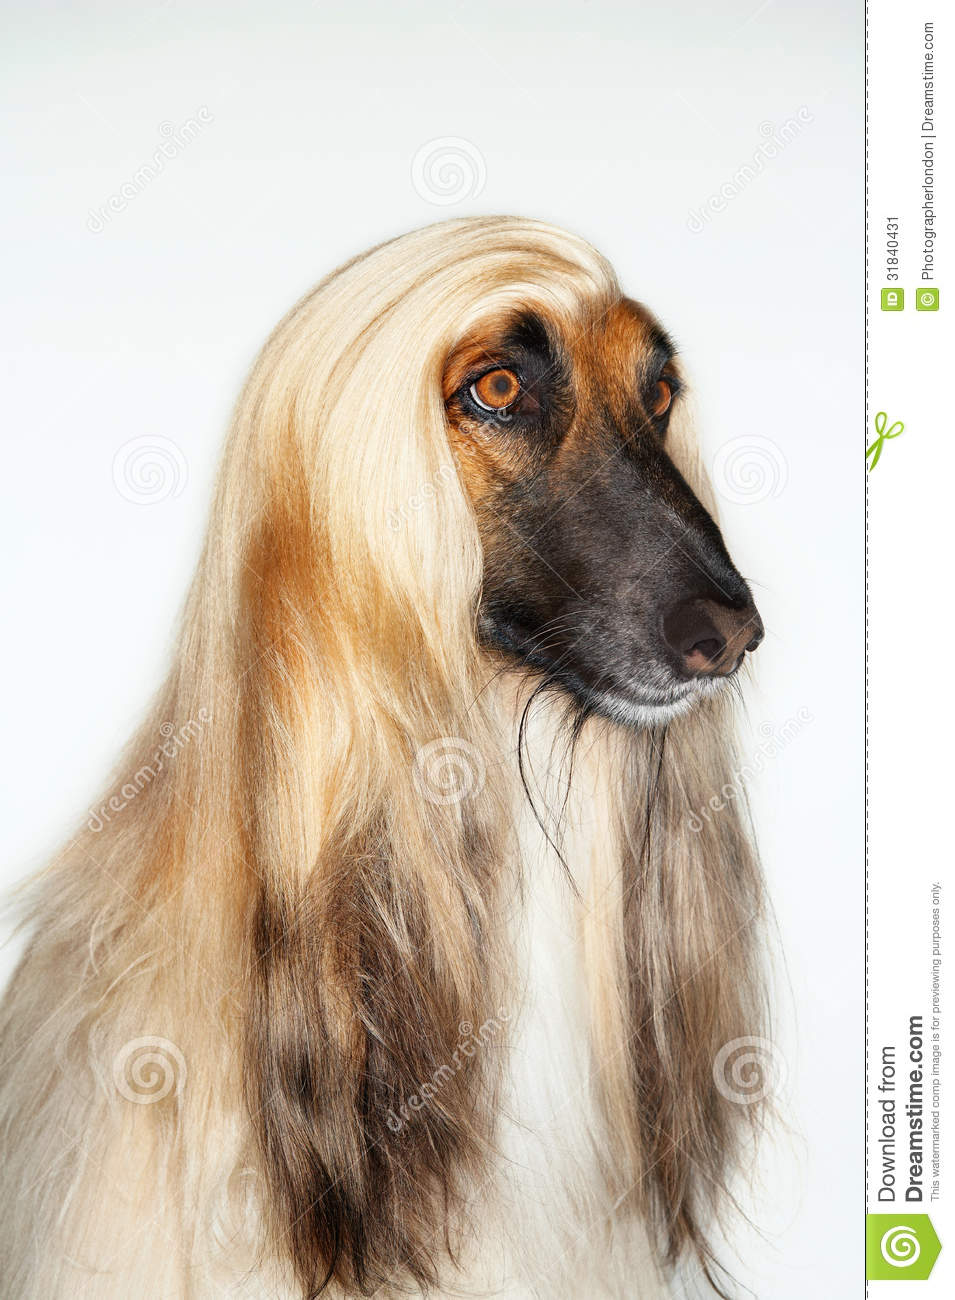 Afghan Hound clipart #10, Download drawings